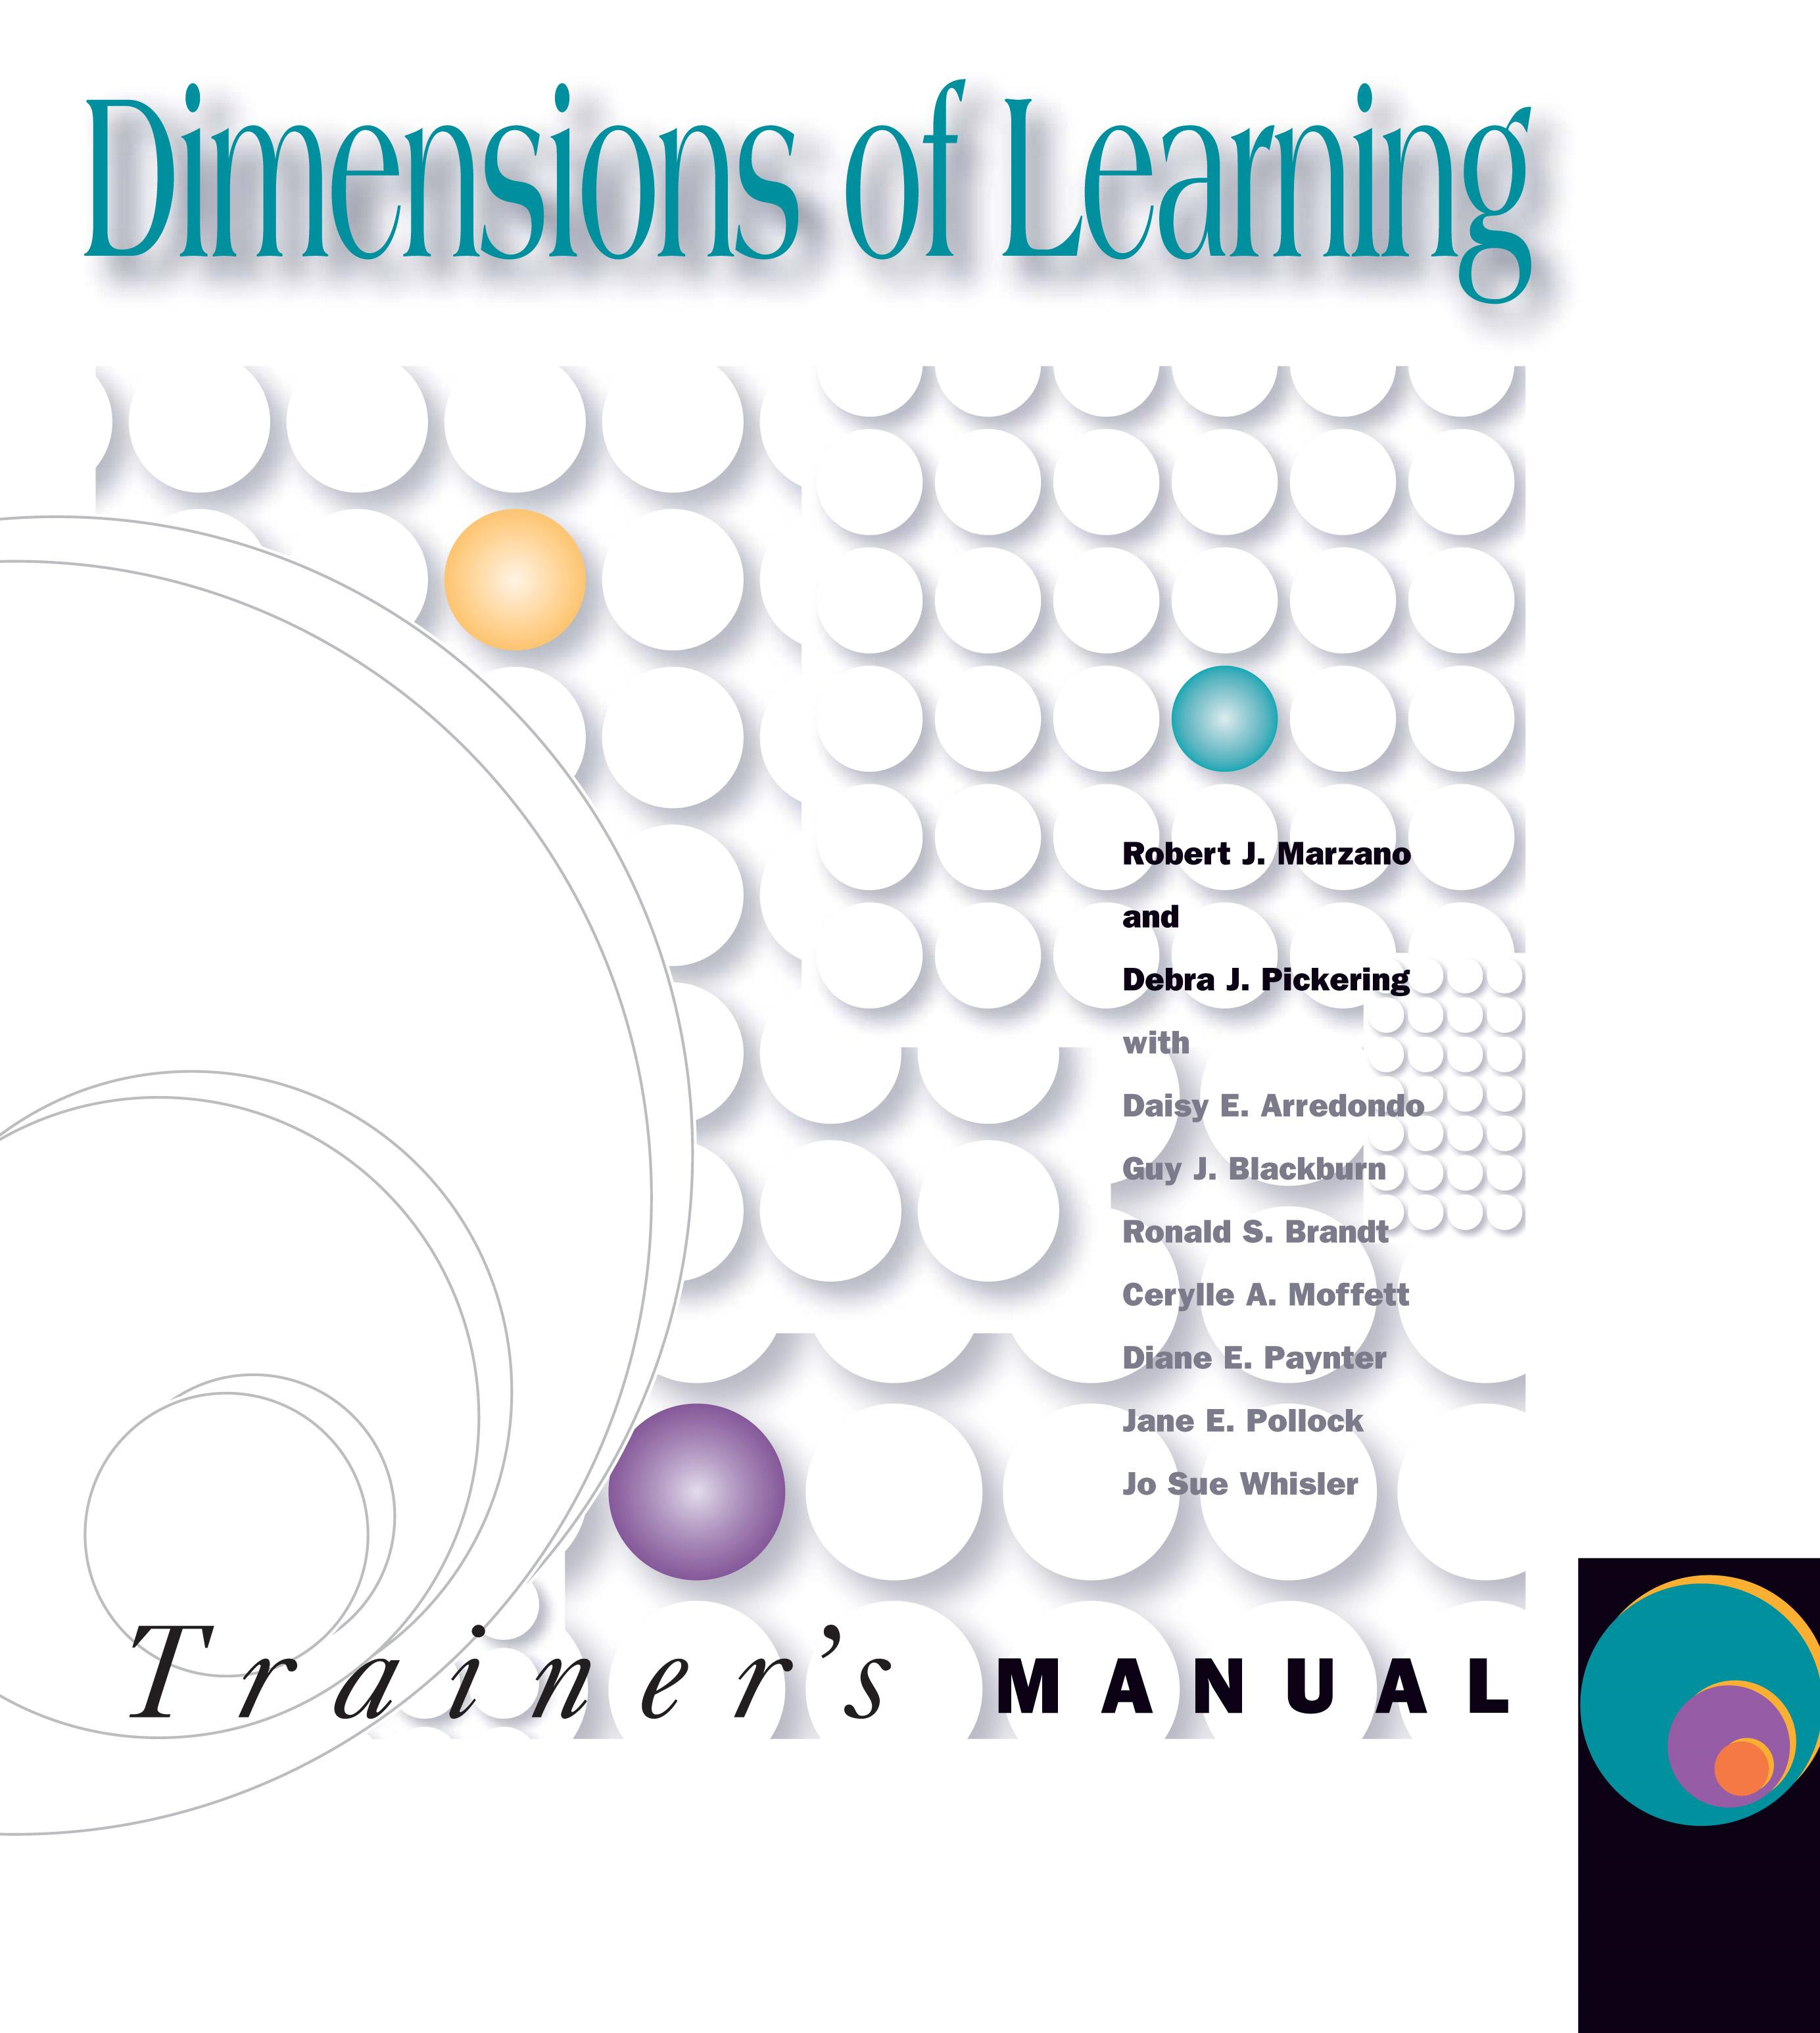 Dimensions of Learning Trainer's Manual, 2nd ed.